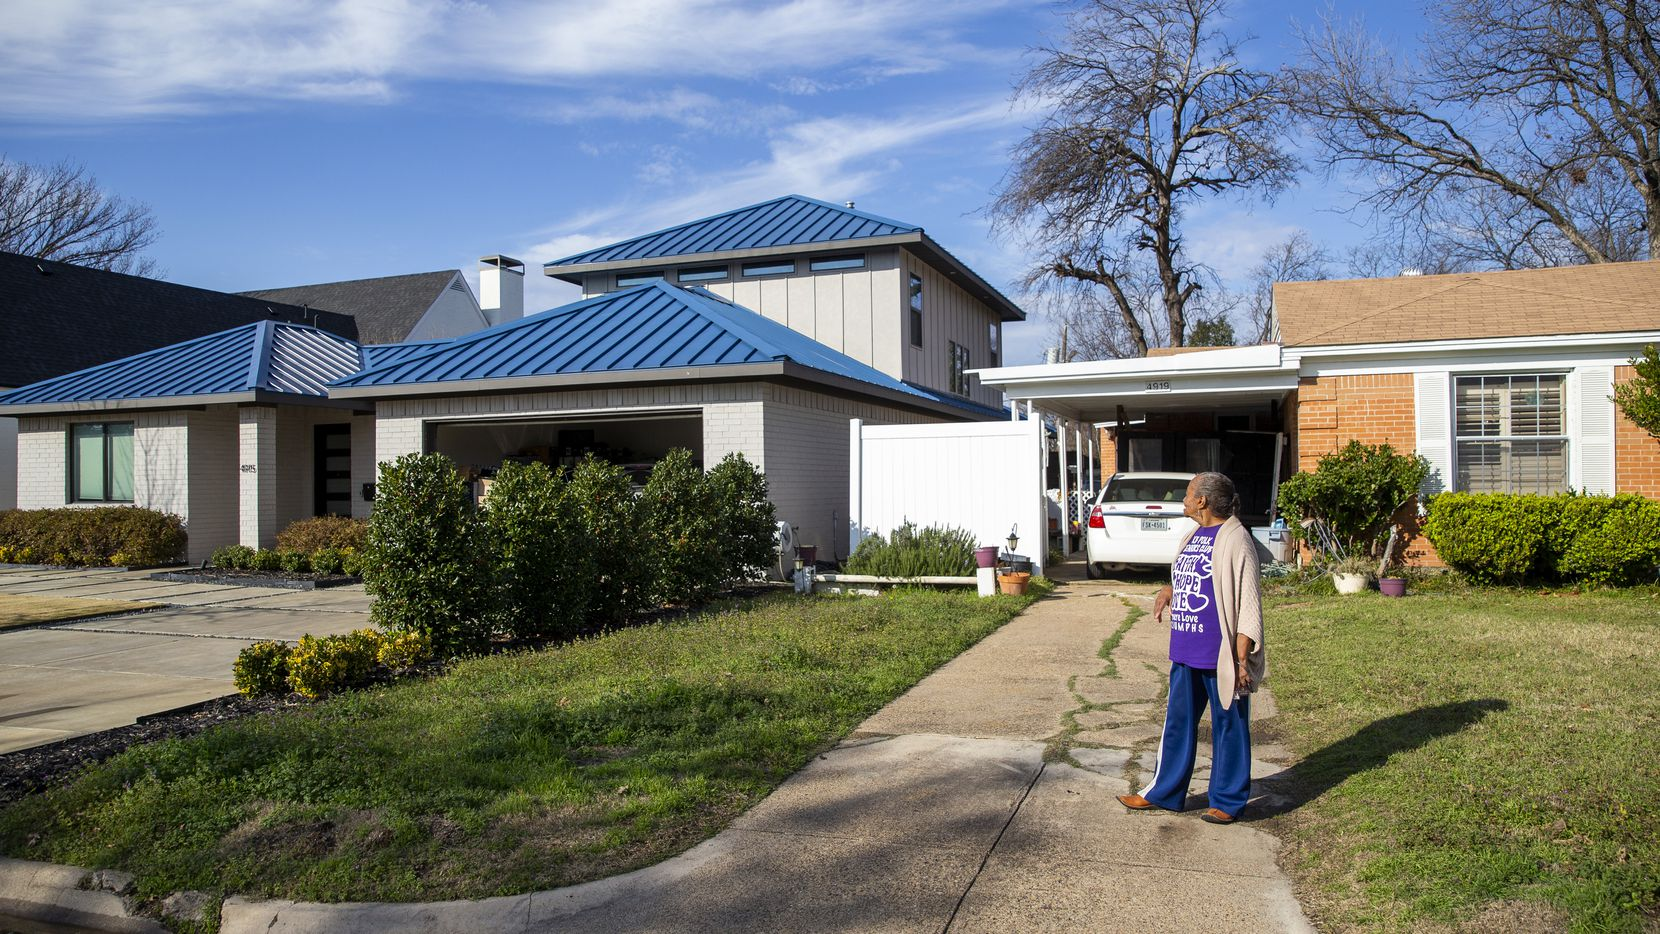 """Vera Reece has lived in Elm Thicket-Northpark since 1961, and has been in her home since 1964. She is not troubled by the big builds surrounding her home, because, jokes the 83-year-old, """"I only have a few more months to live."""" A bill before the Texas House would protect residents like Reece from spiking property taxes."""